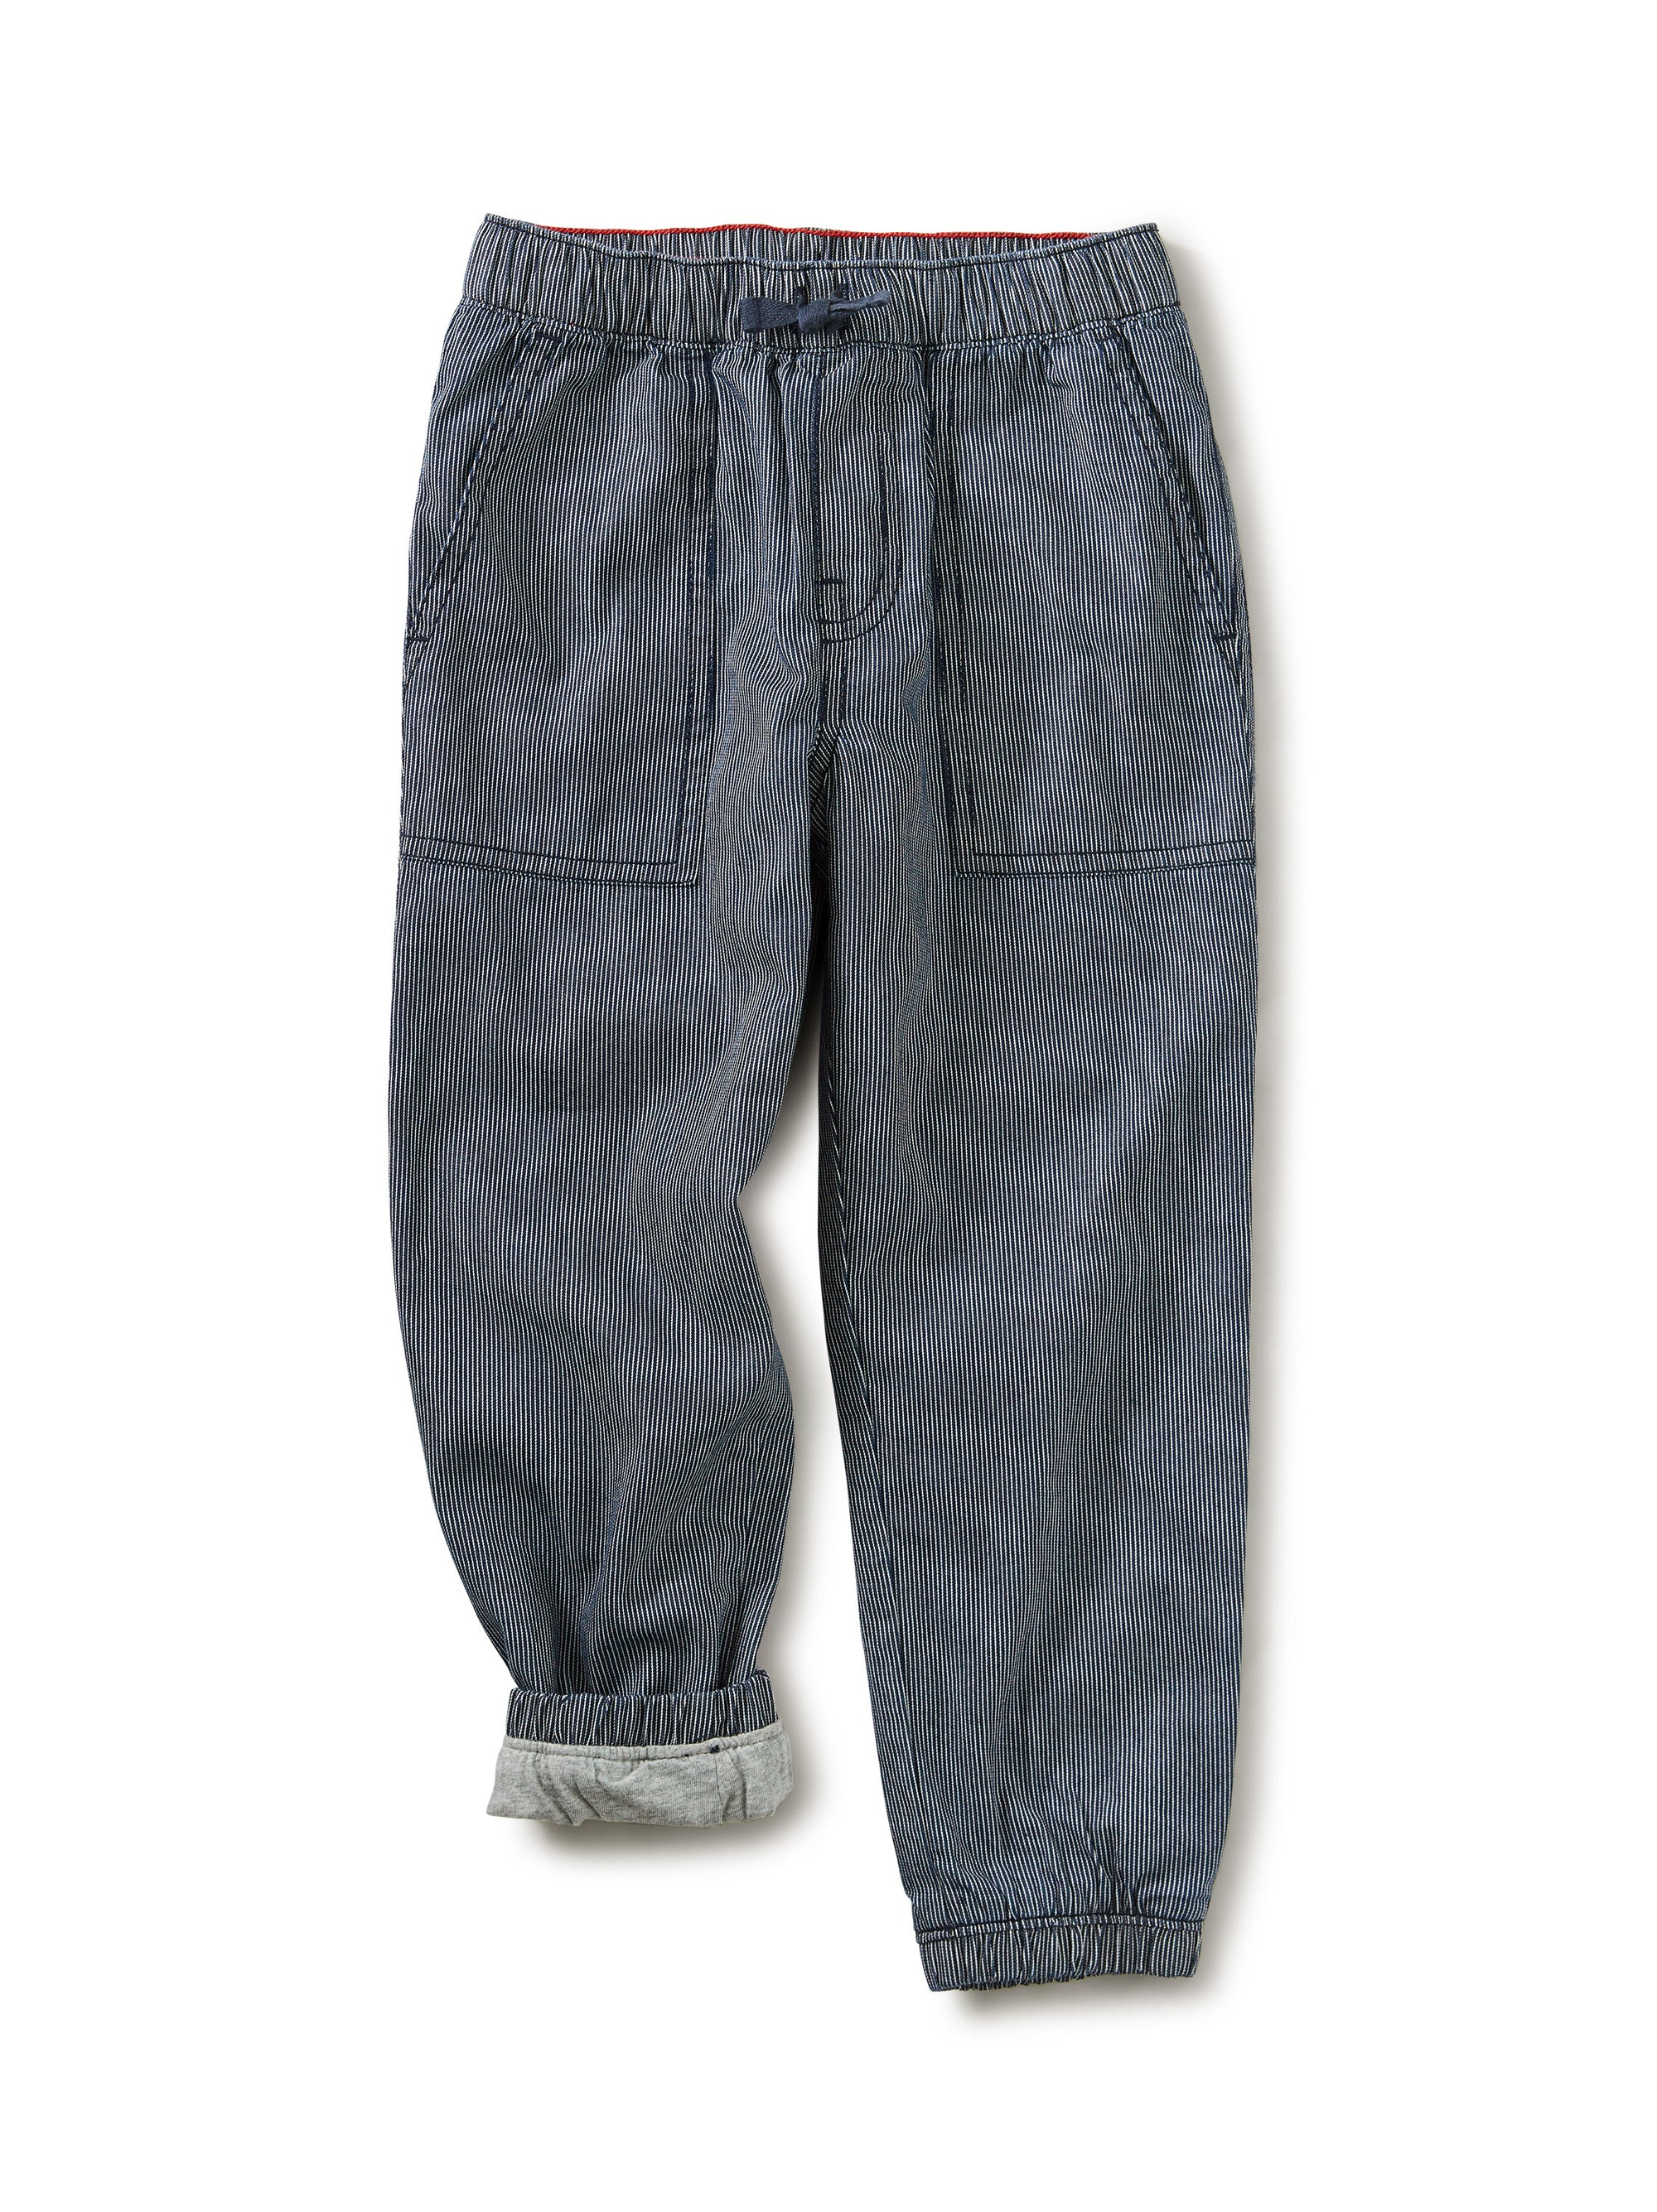 Tea Collection Railroad Stripe Lightweight Lined Jogger Pant